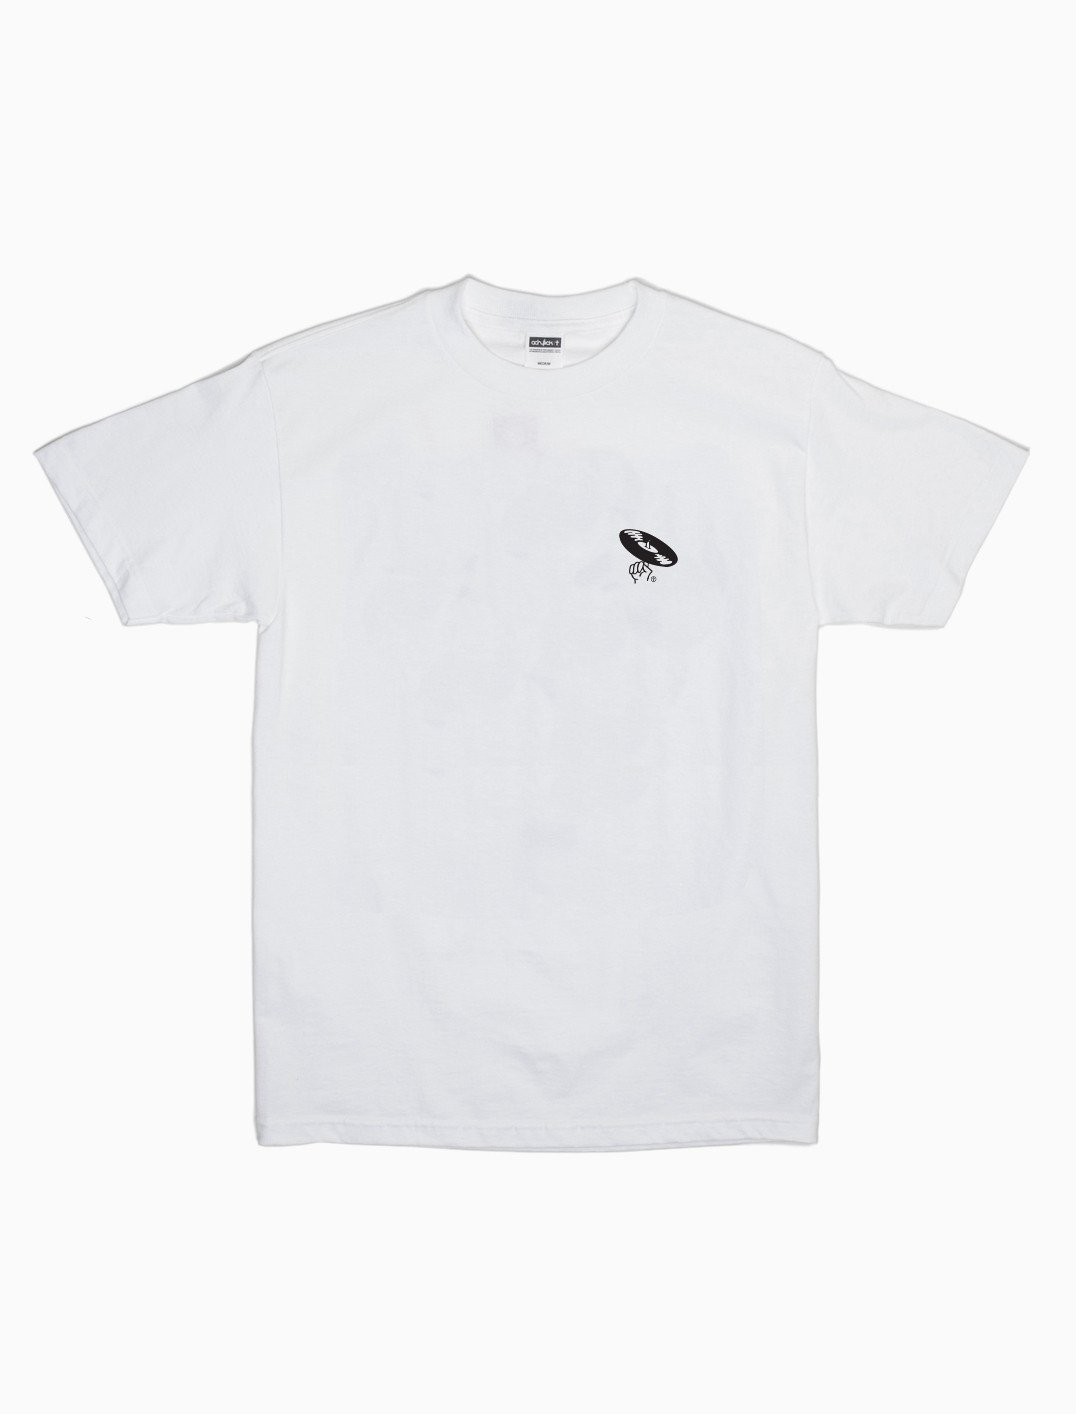 Acrylick - One Nation Tee - Mens